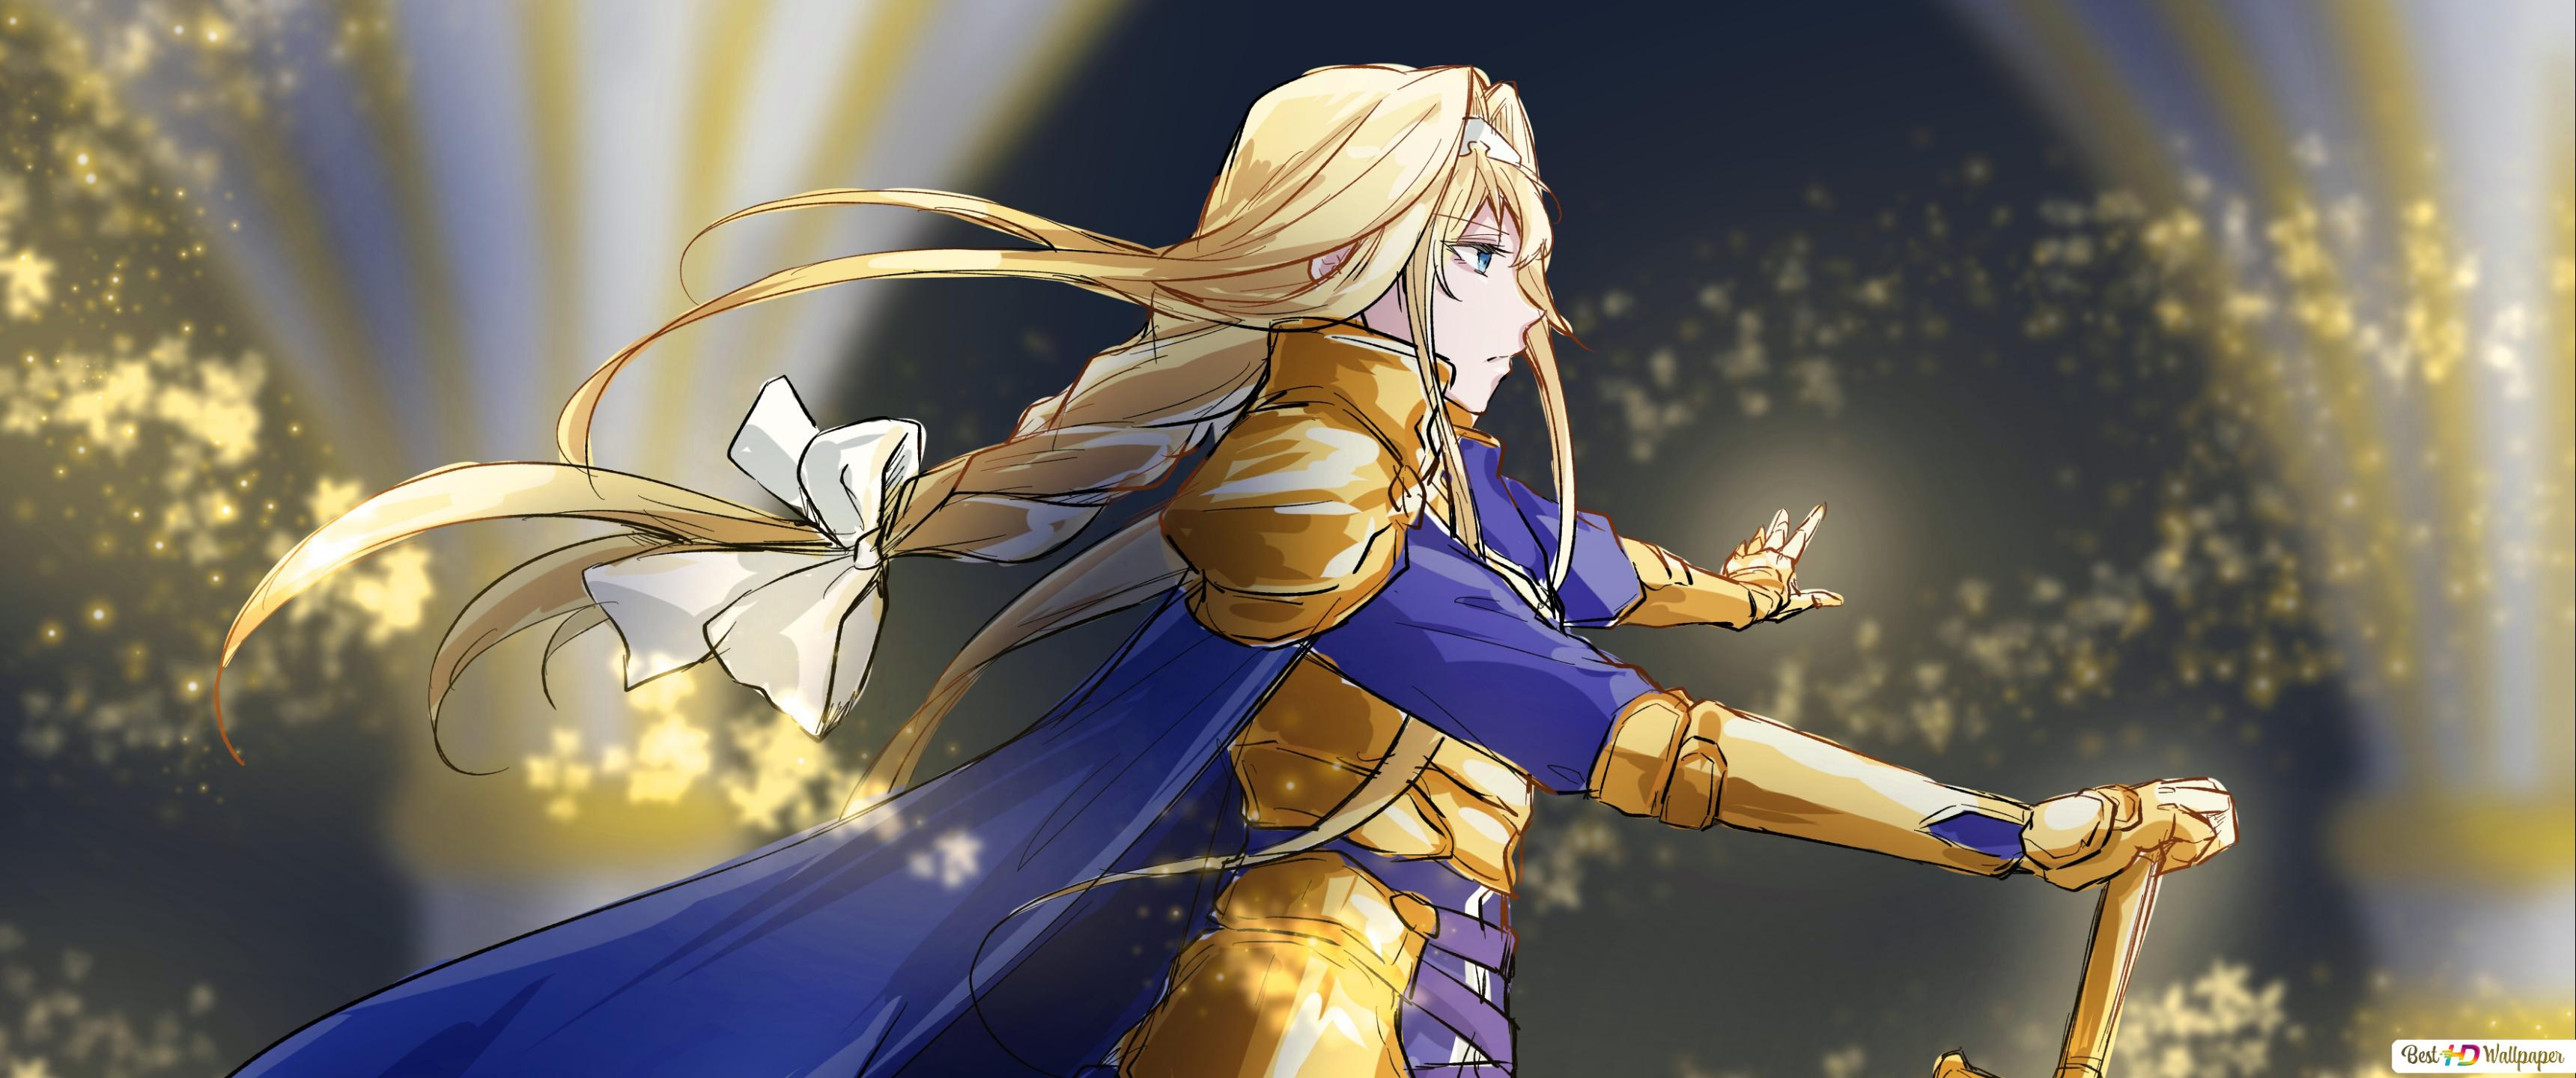 Sword Art Online Alicization Alice Zuberg Golden Knight Hd Wallpaper Download